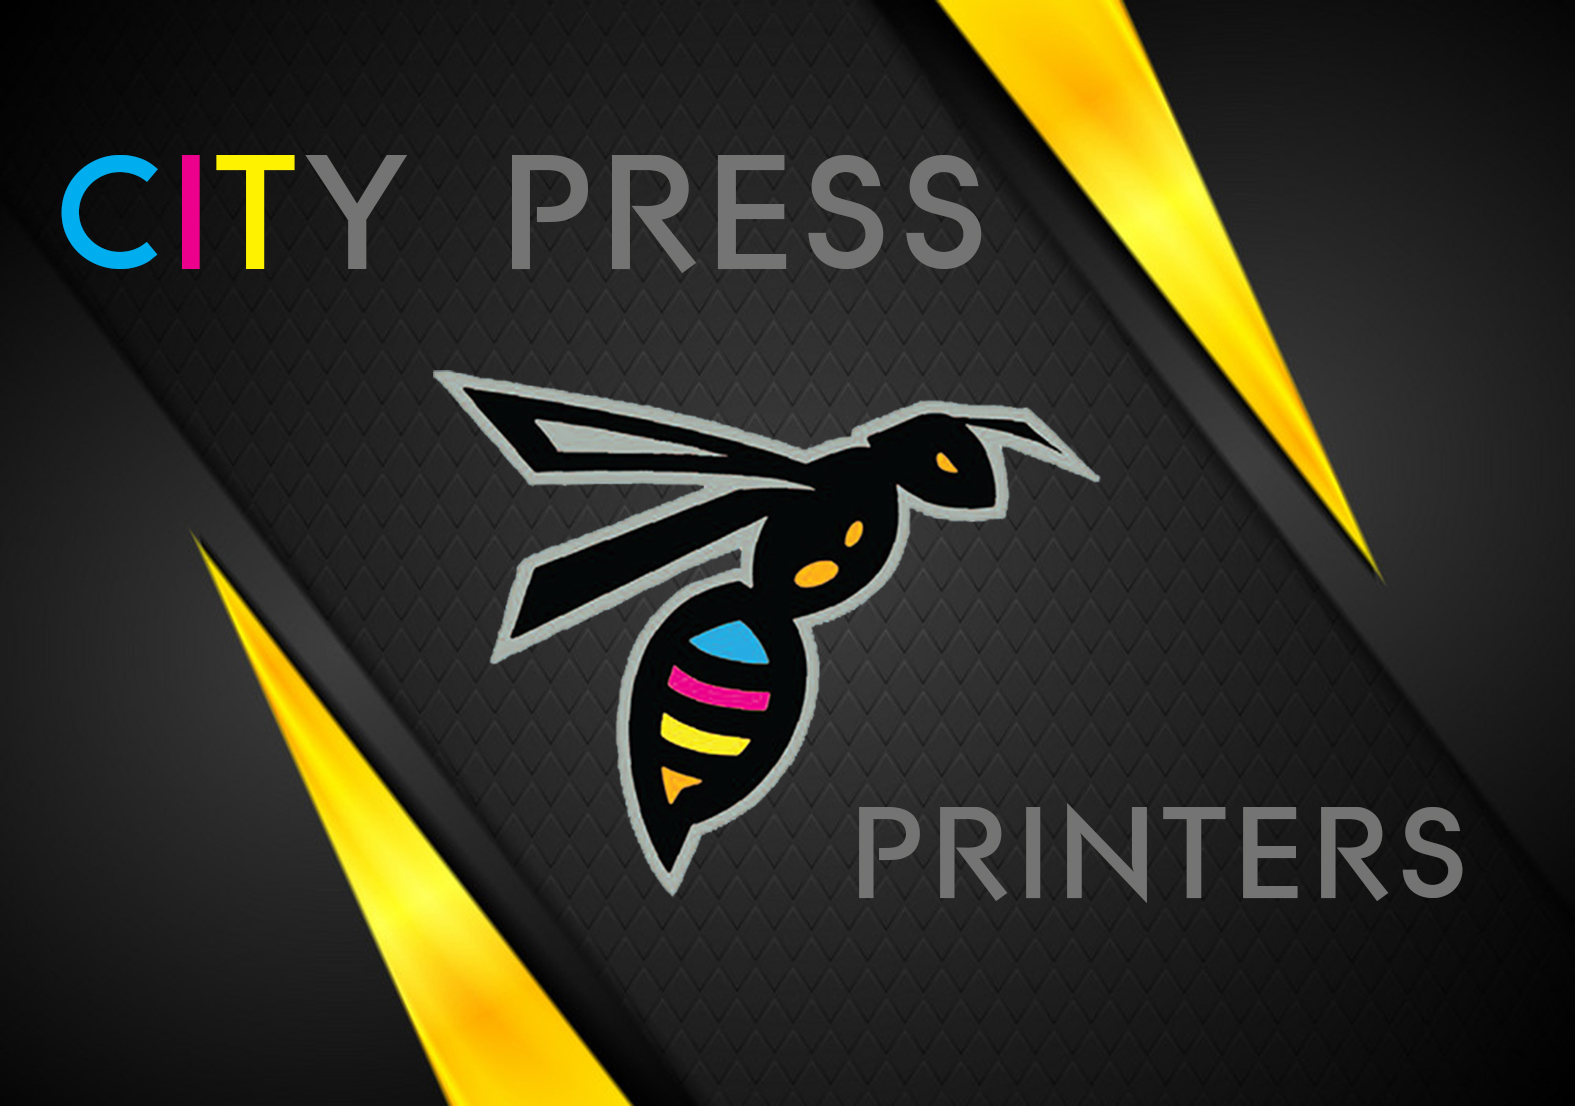 City Press Printers, Brechin DD9 6DY